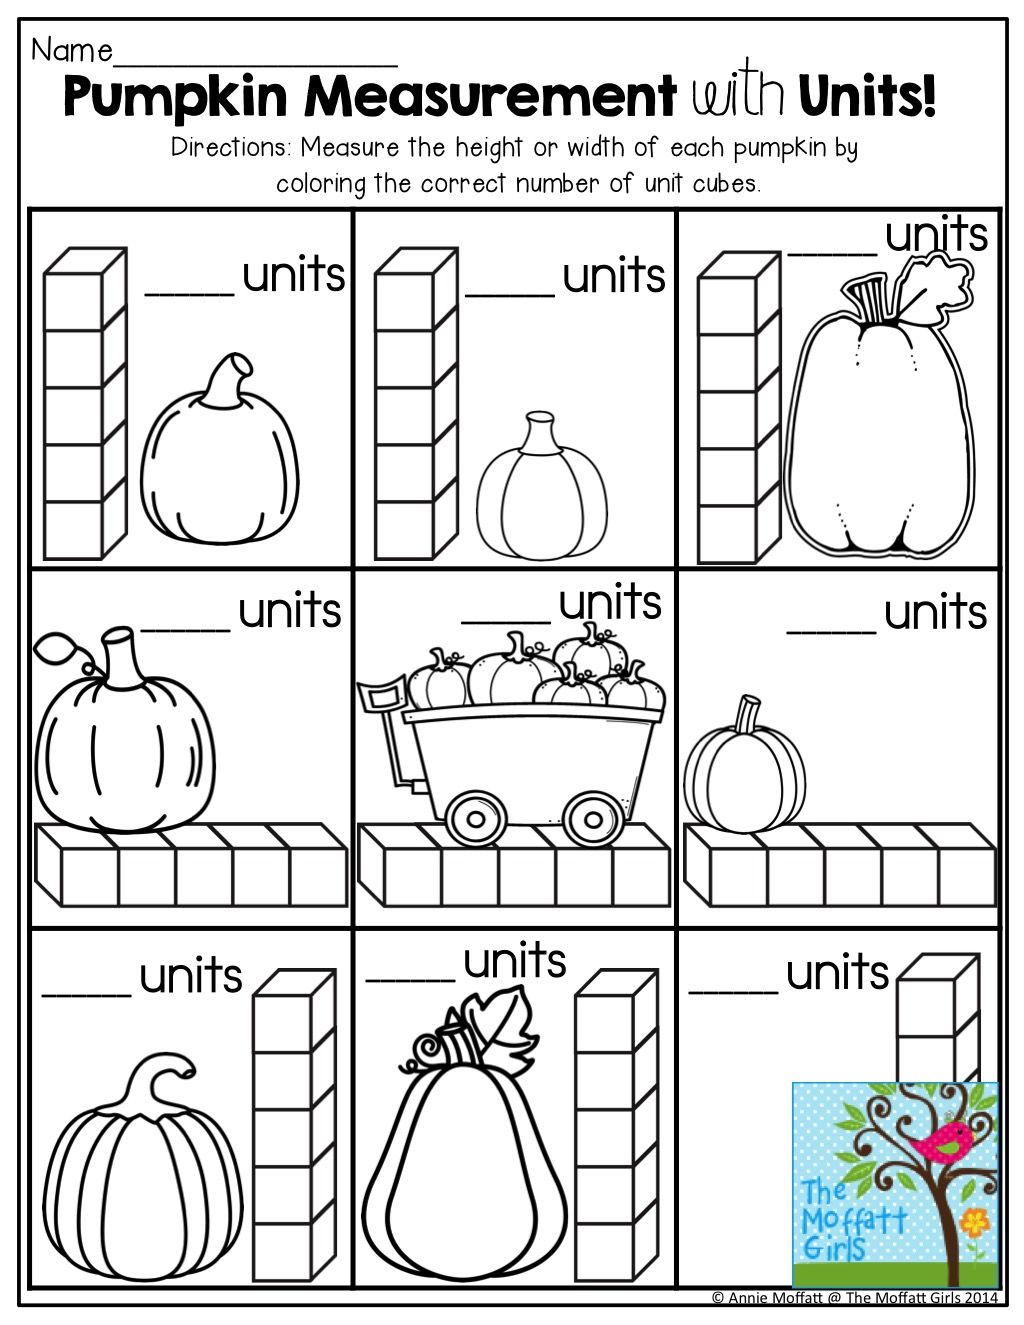 pumpkin measurement and other fun printables life cycle of a pumpkin preschool math math. Black Bedroom Furniture Sets. Home Design Ideas